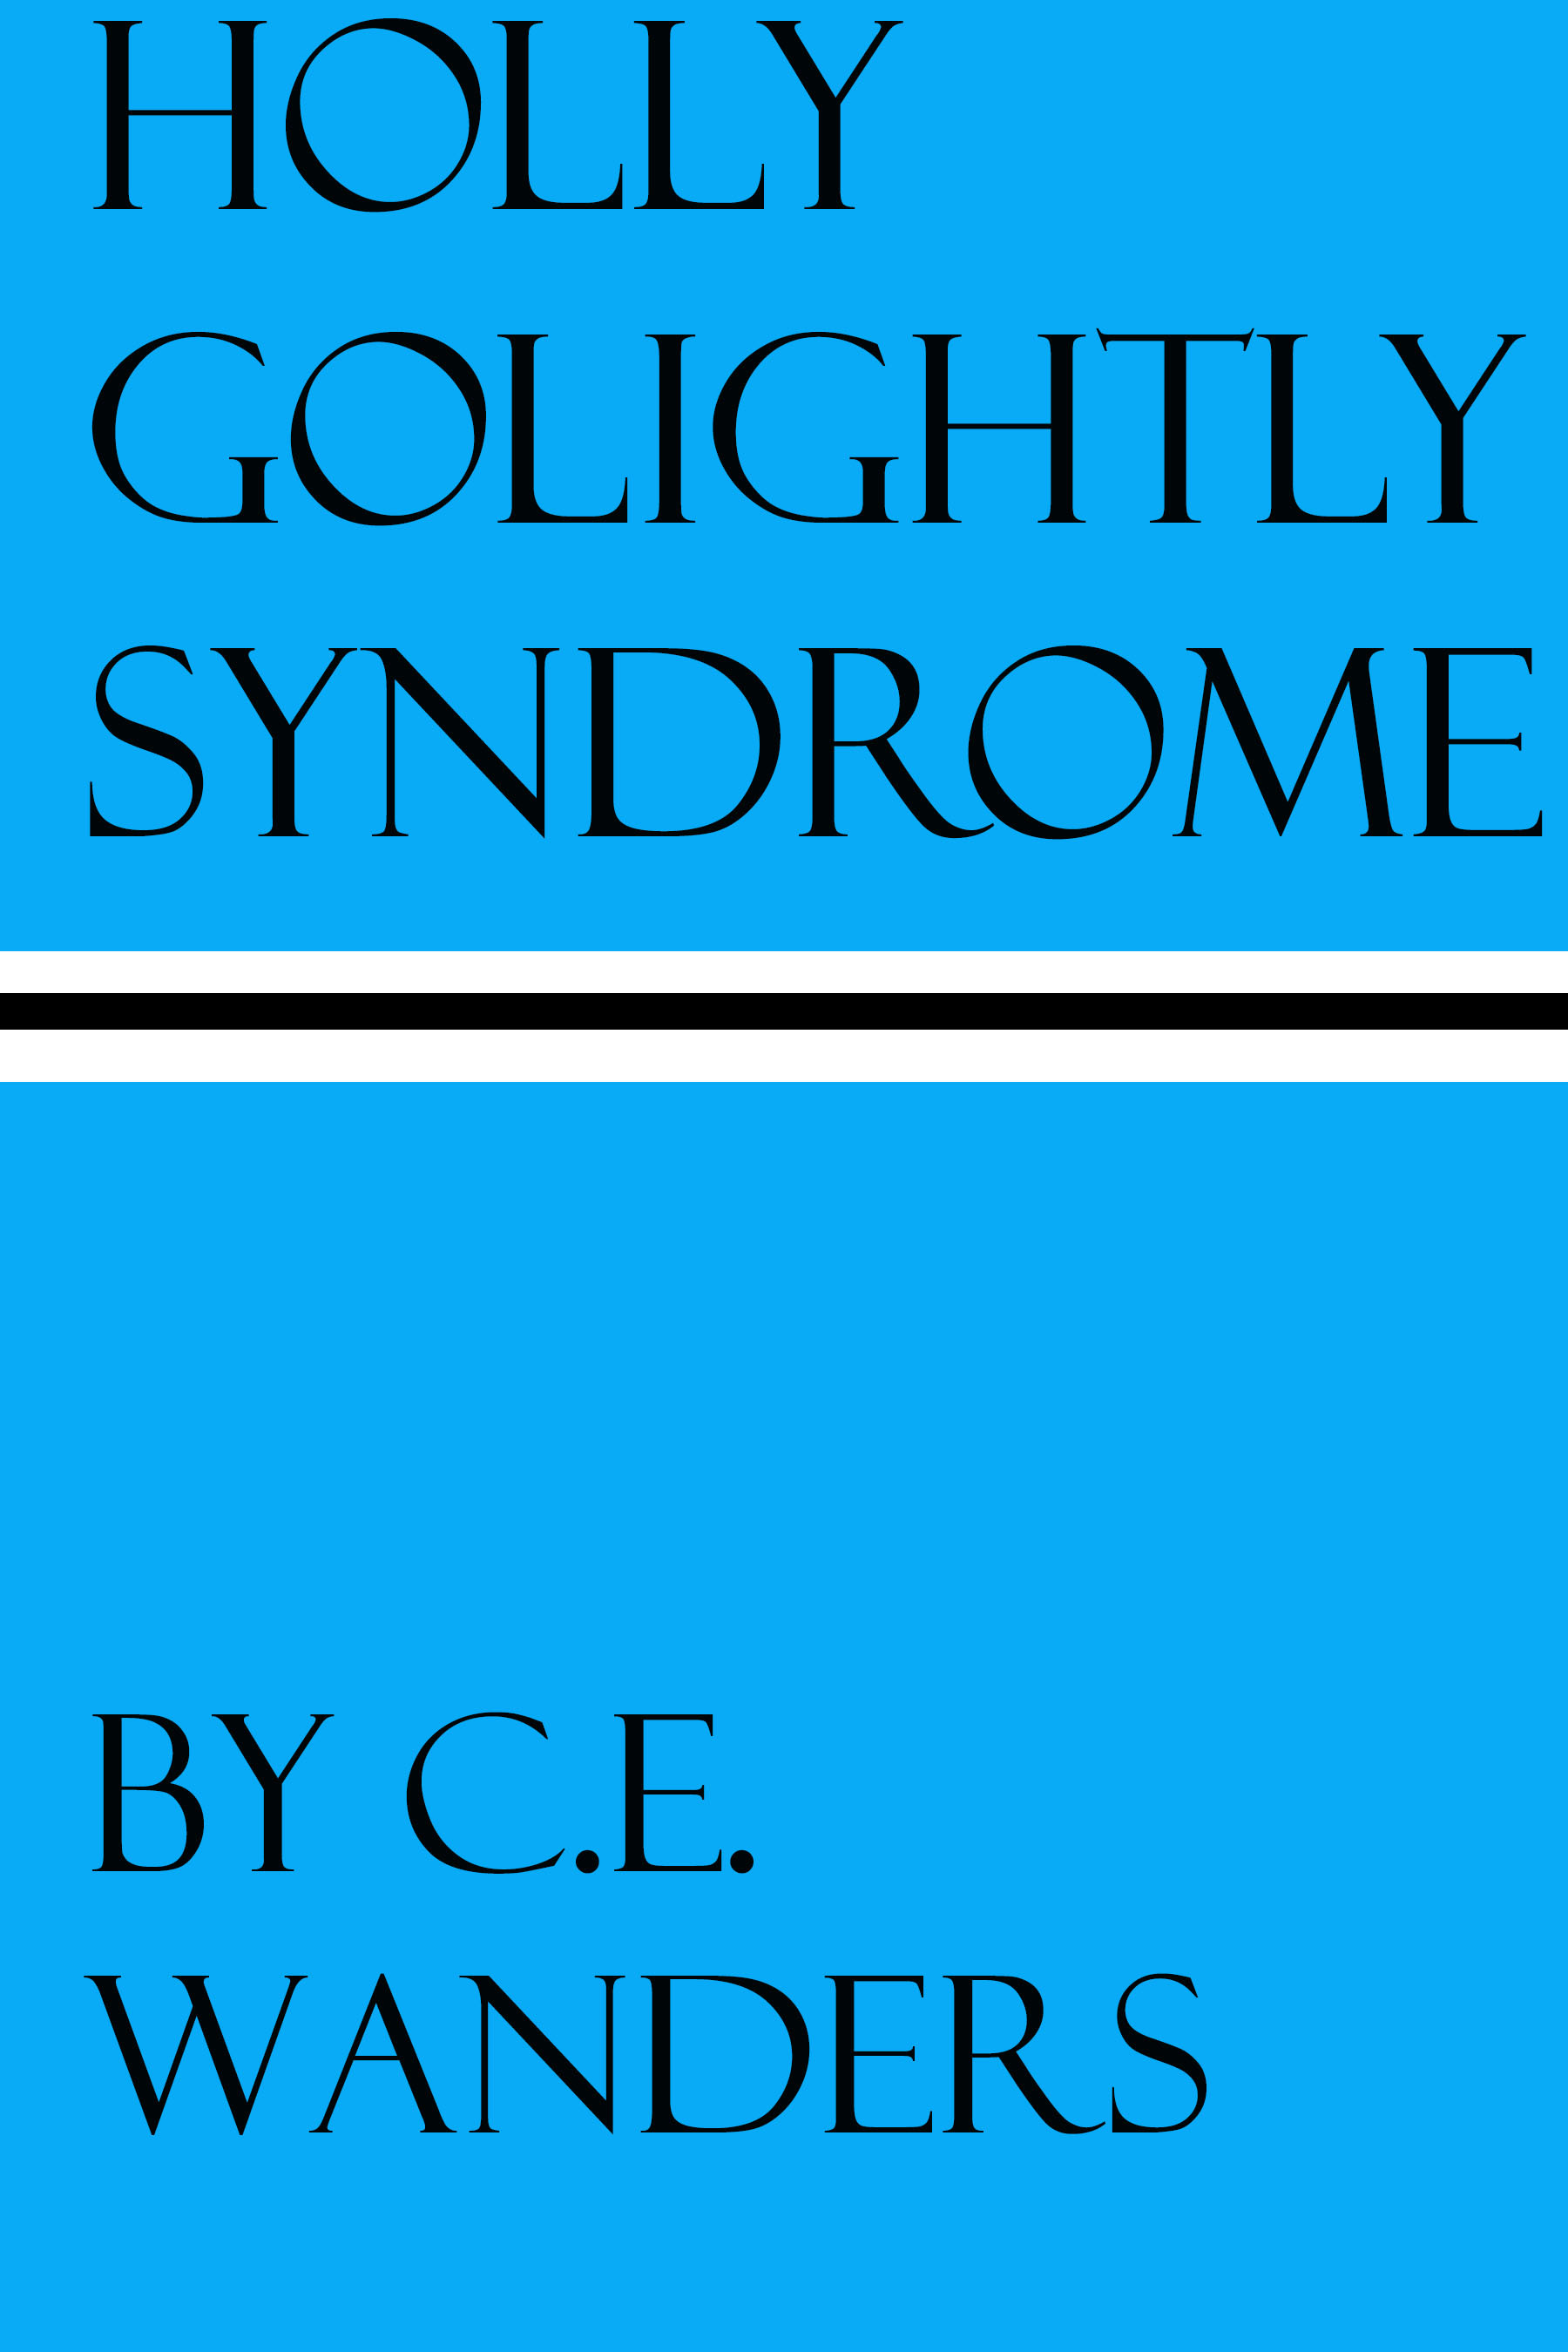 Holly Golightly Syndrome By: C.E. Wanders